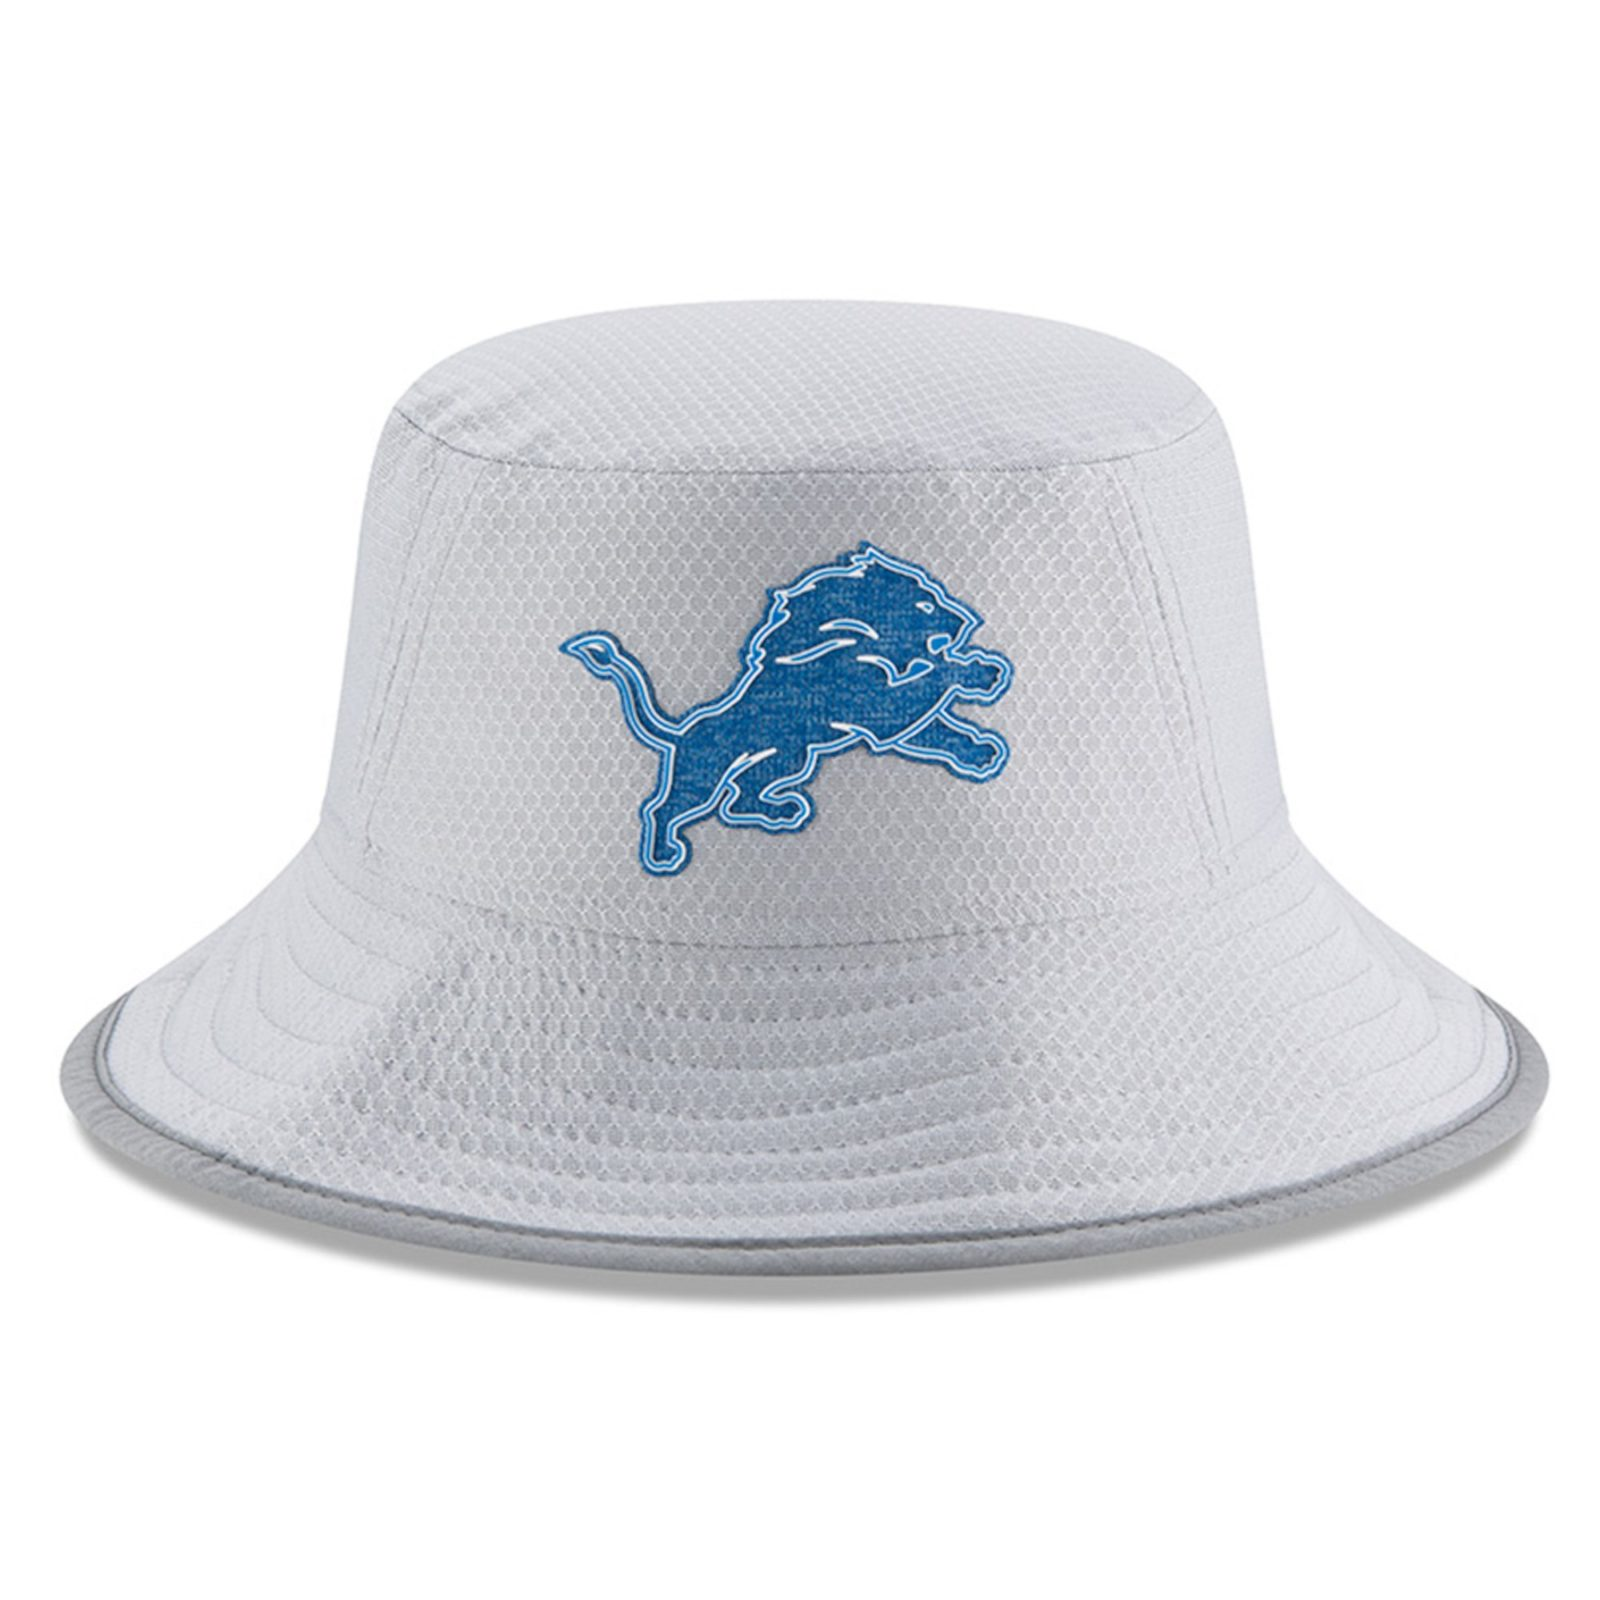 Detroit Lions New Era 2018 Training Camp Official Bucket Hat - Gray ... 44589d20d